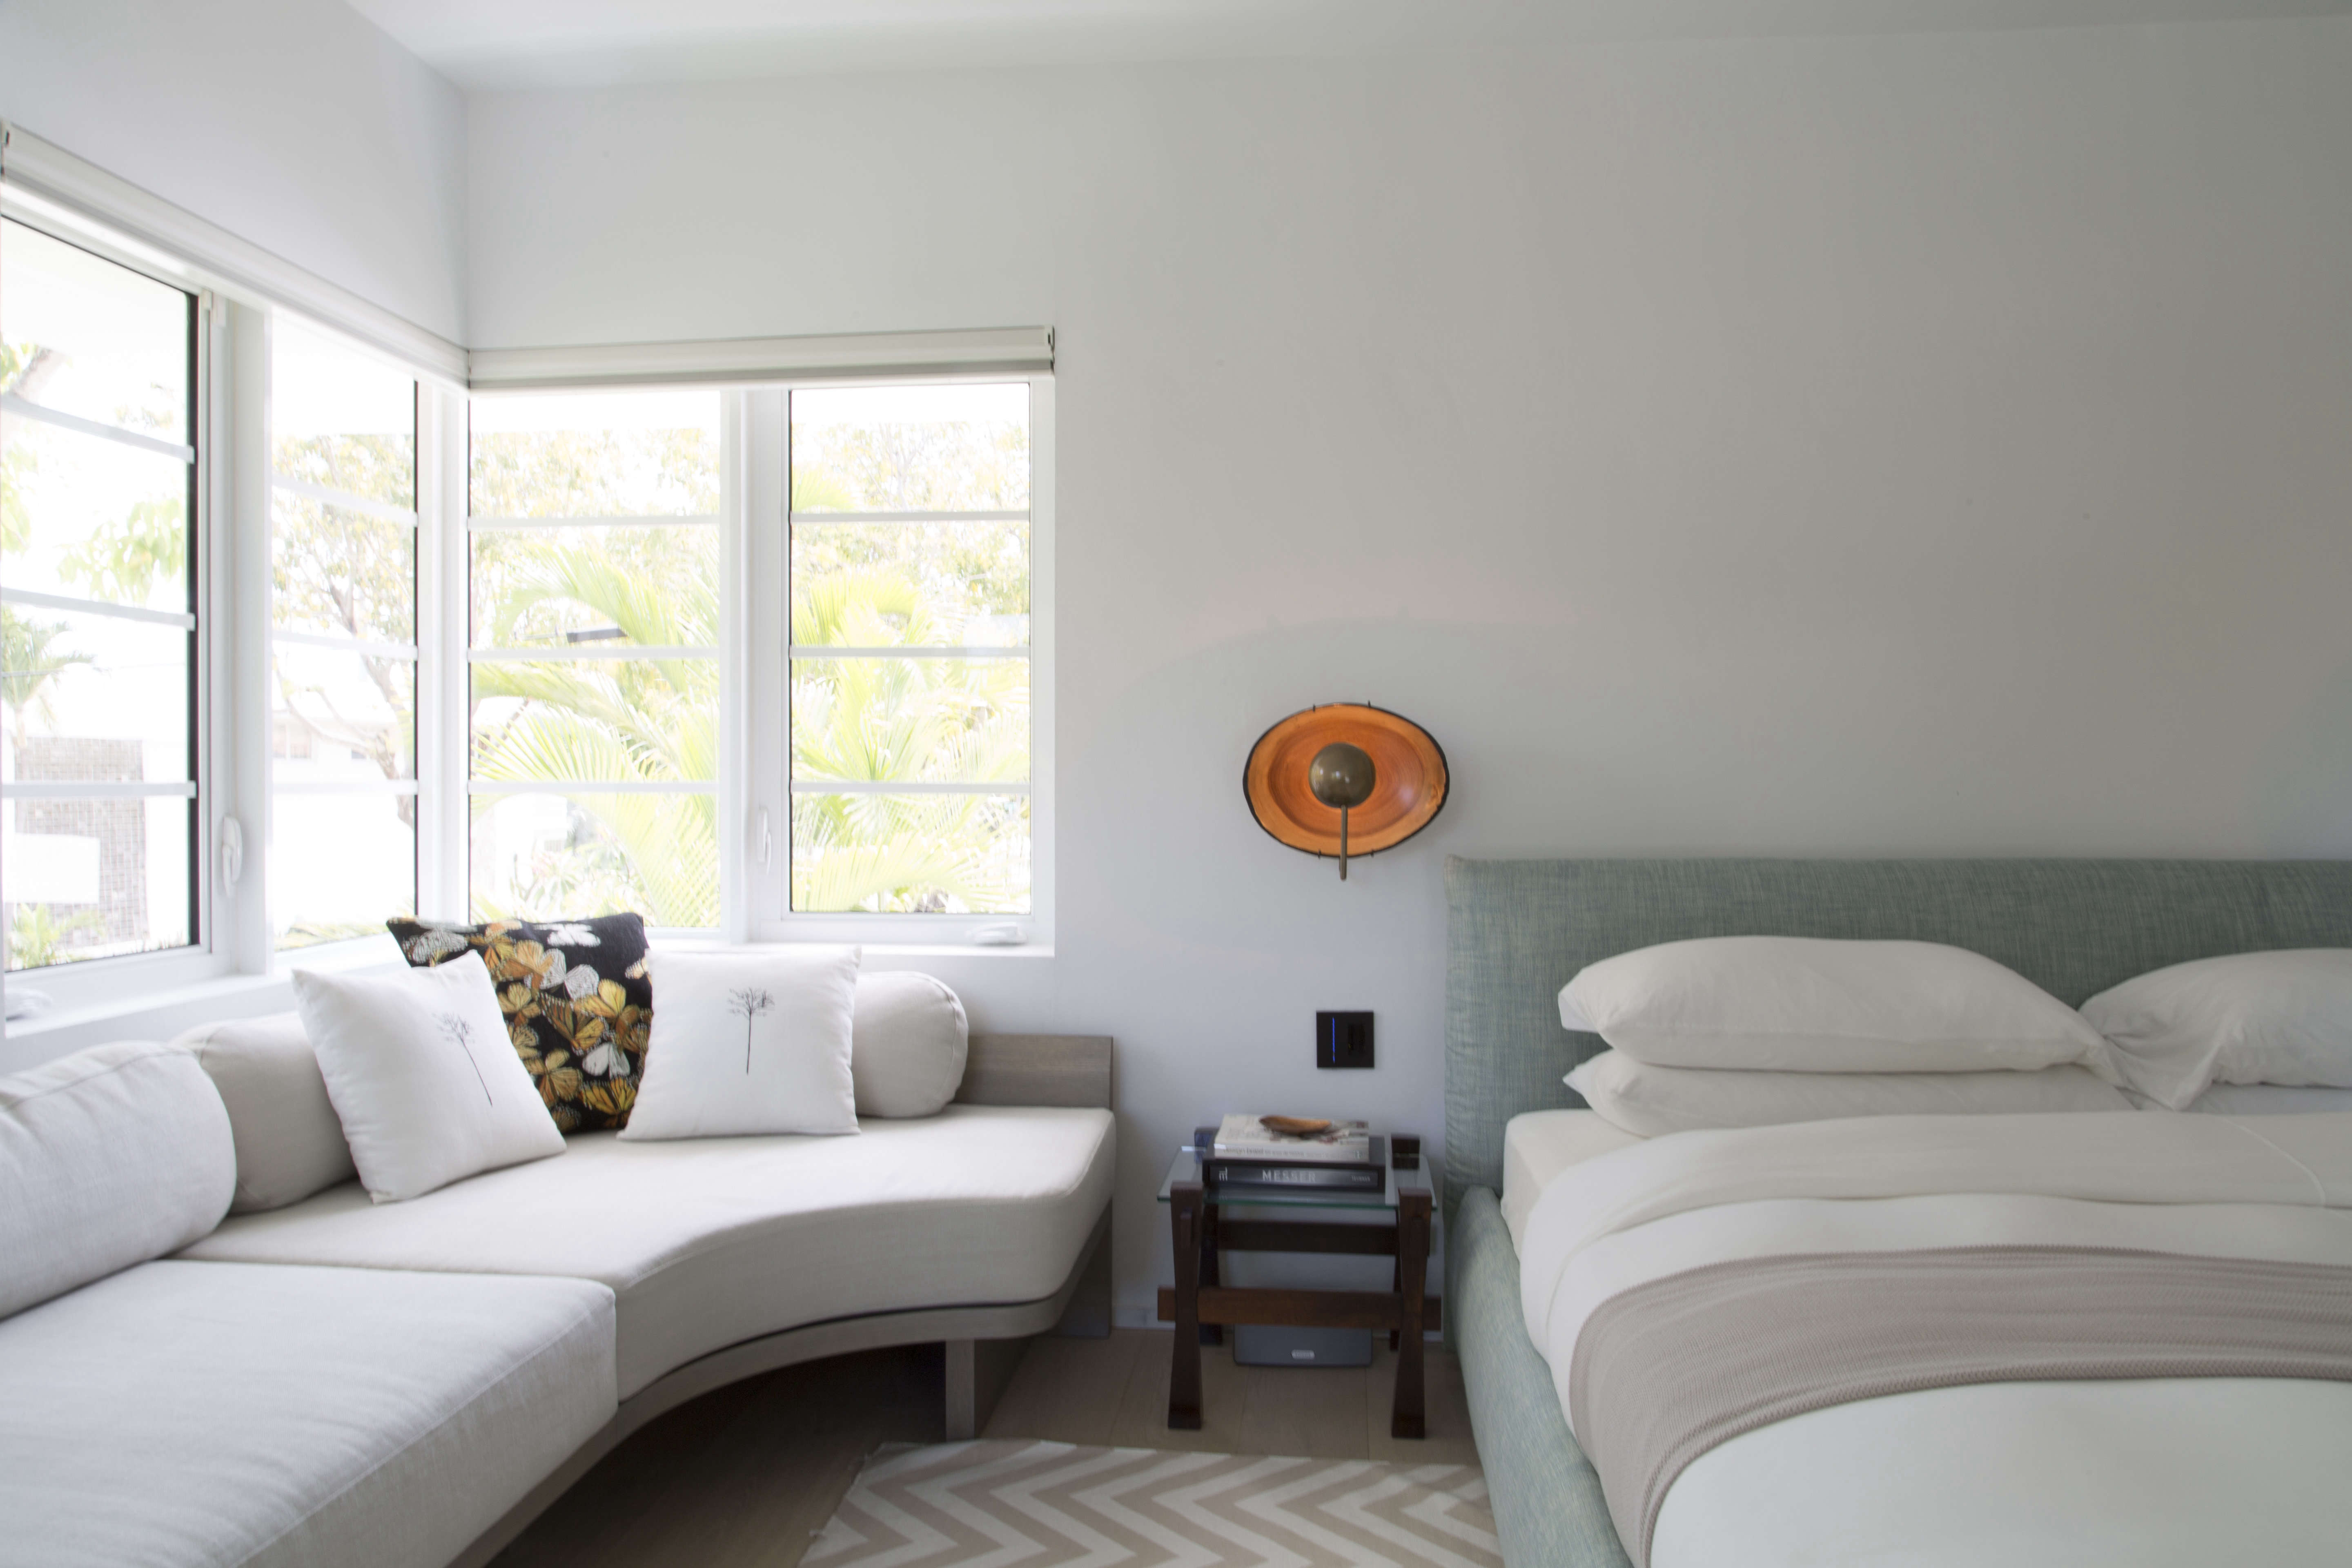 Modern in Miami At Home with a Worldly Contemporary Furniture Dealer Master bedroom in a revived 1932 Miami villa with contemporary furniture dealer Stephan Weishaupt of Avenue Road, Max Zambelli photo | Remodelista